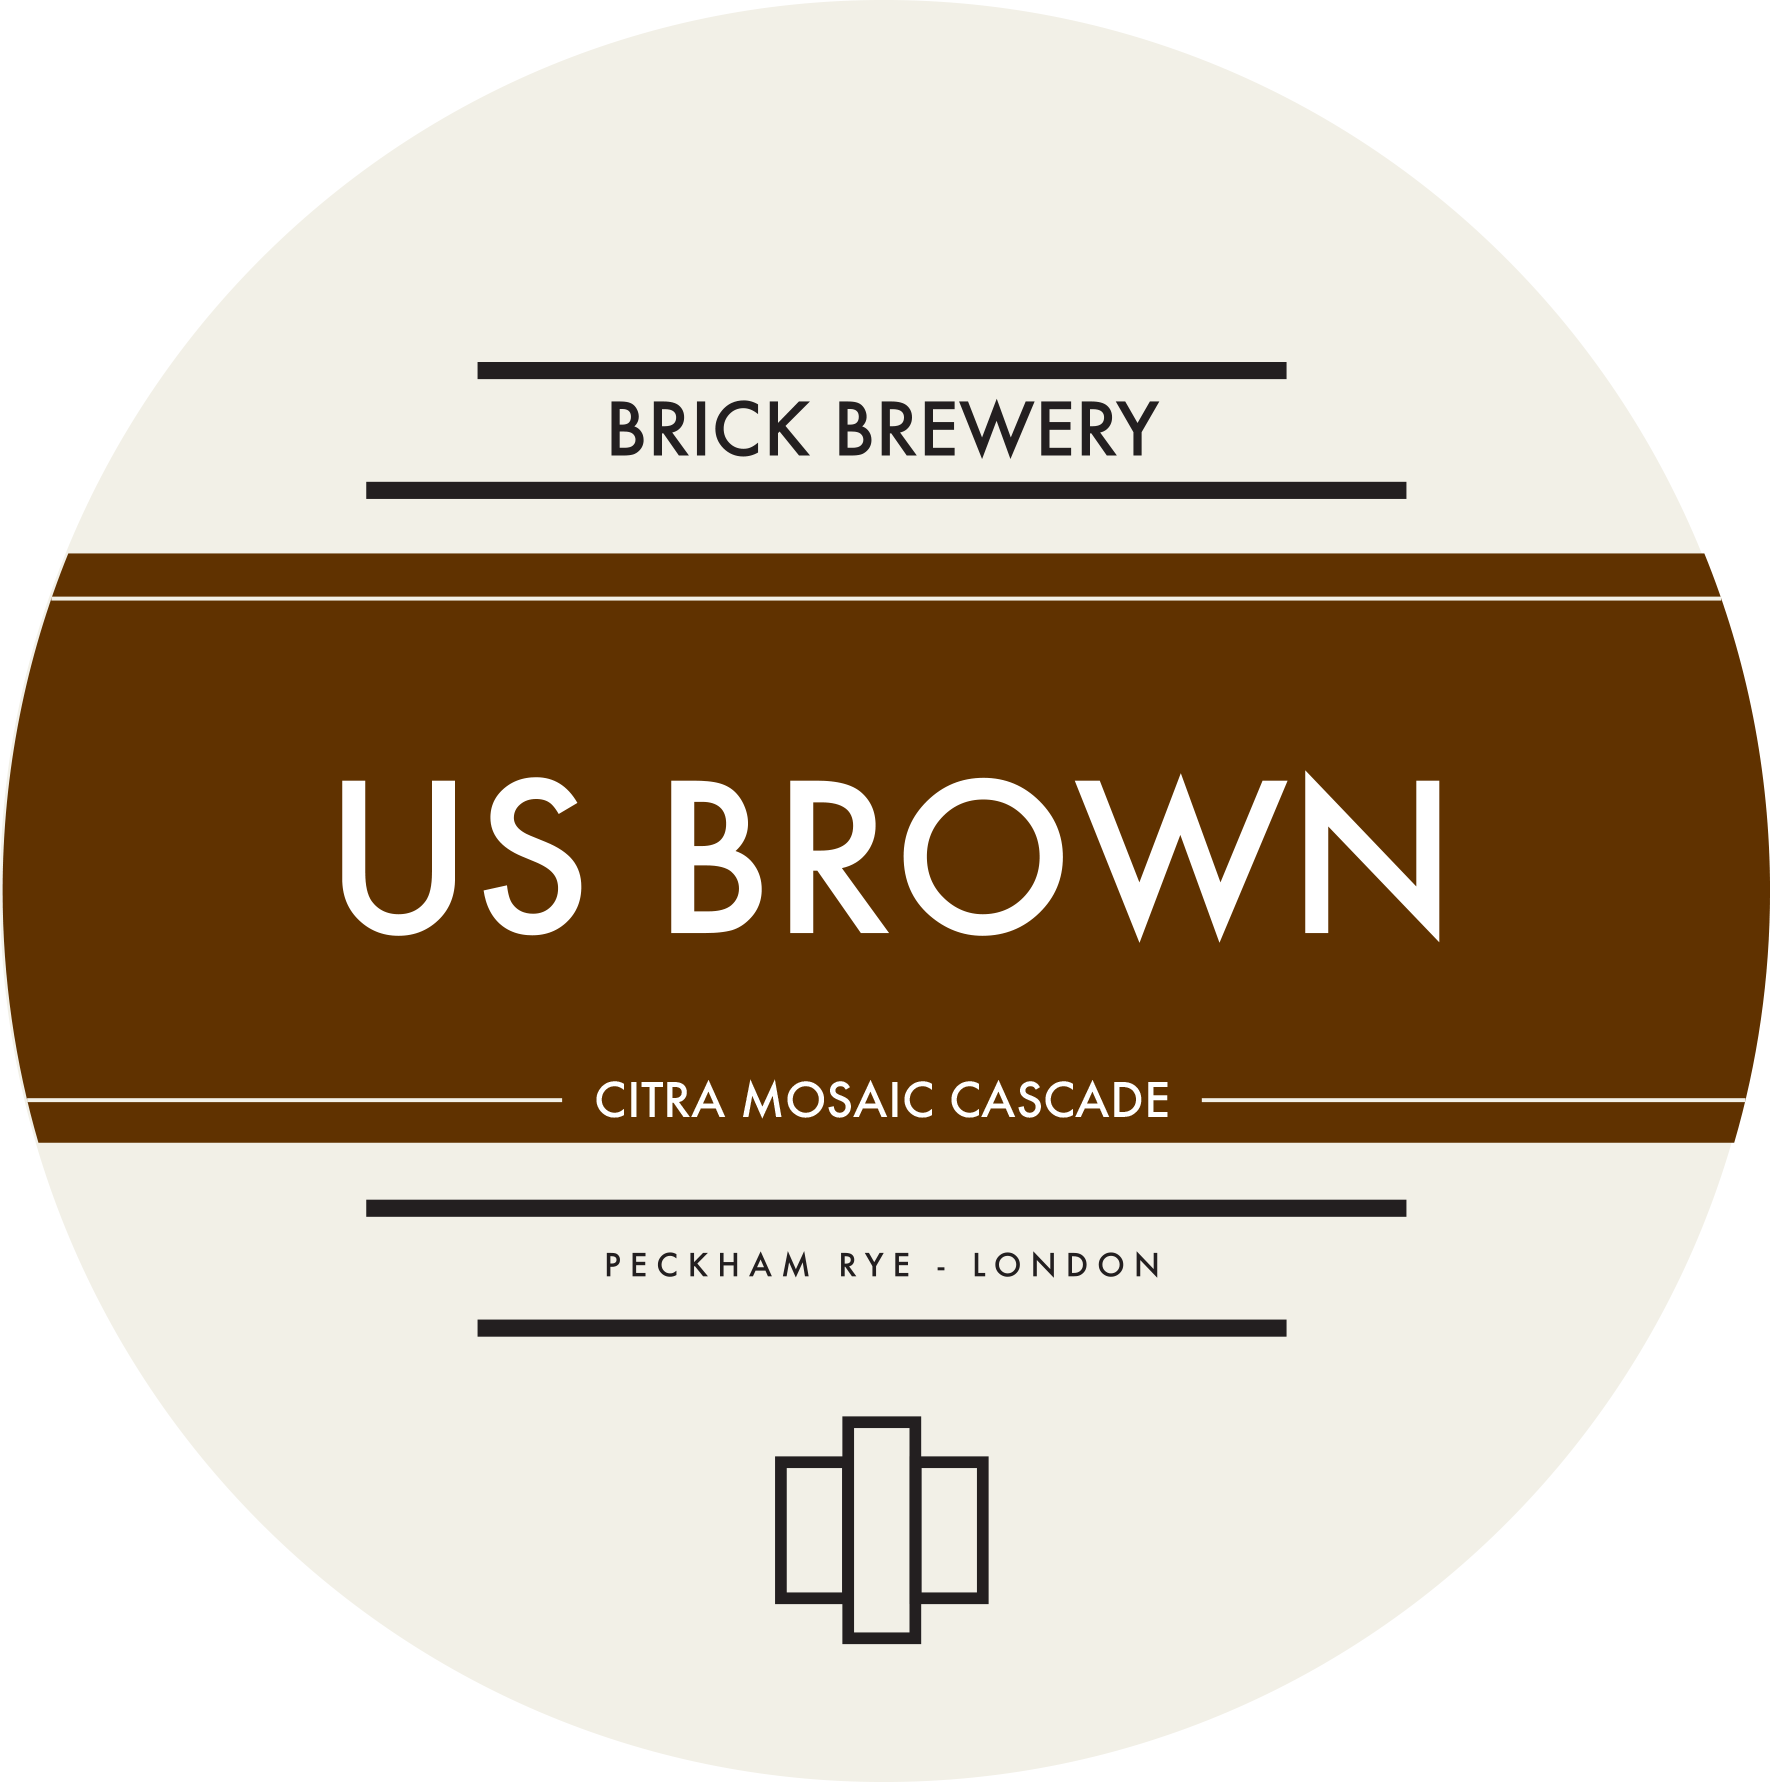 Brick Brewery's US Brown Beer Logo